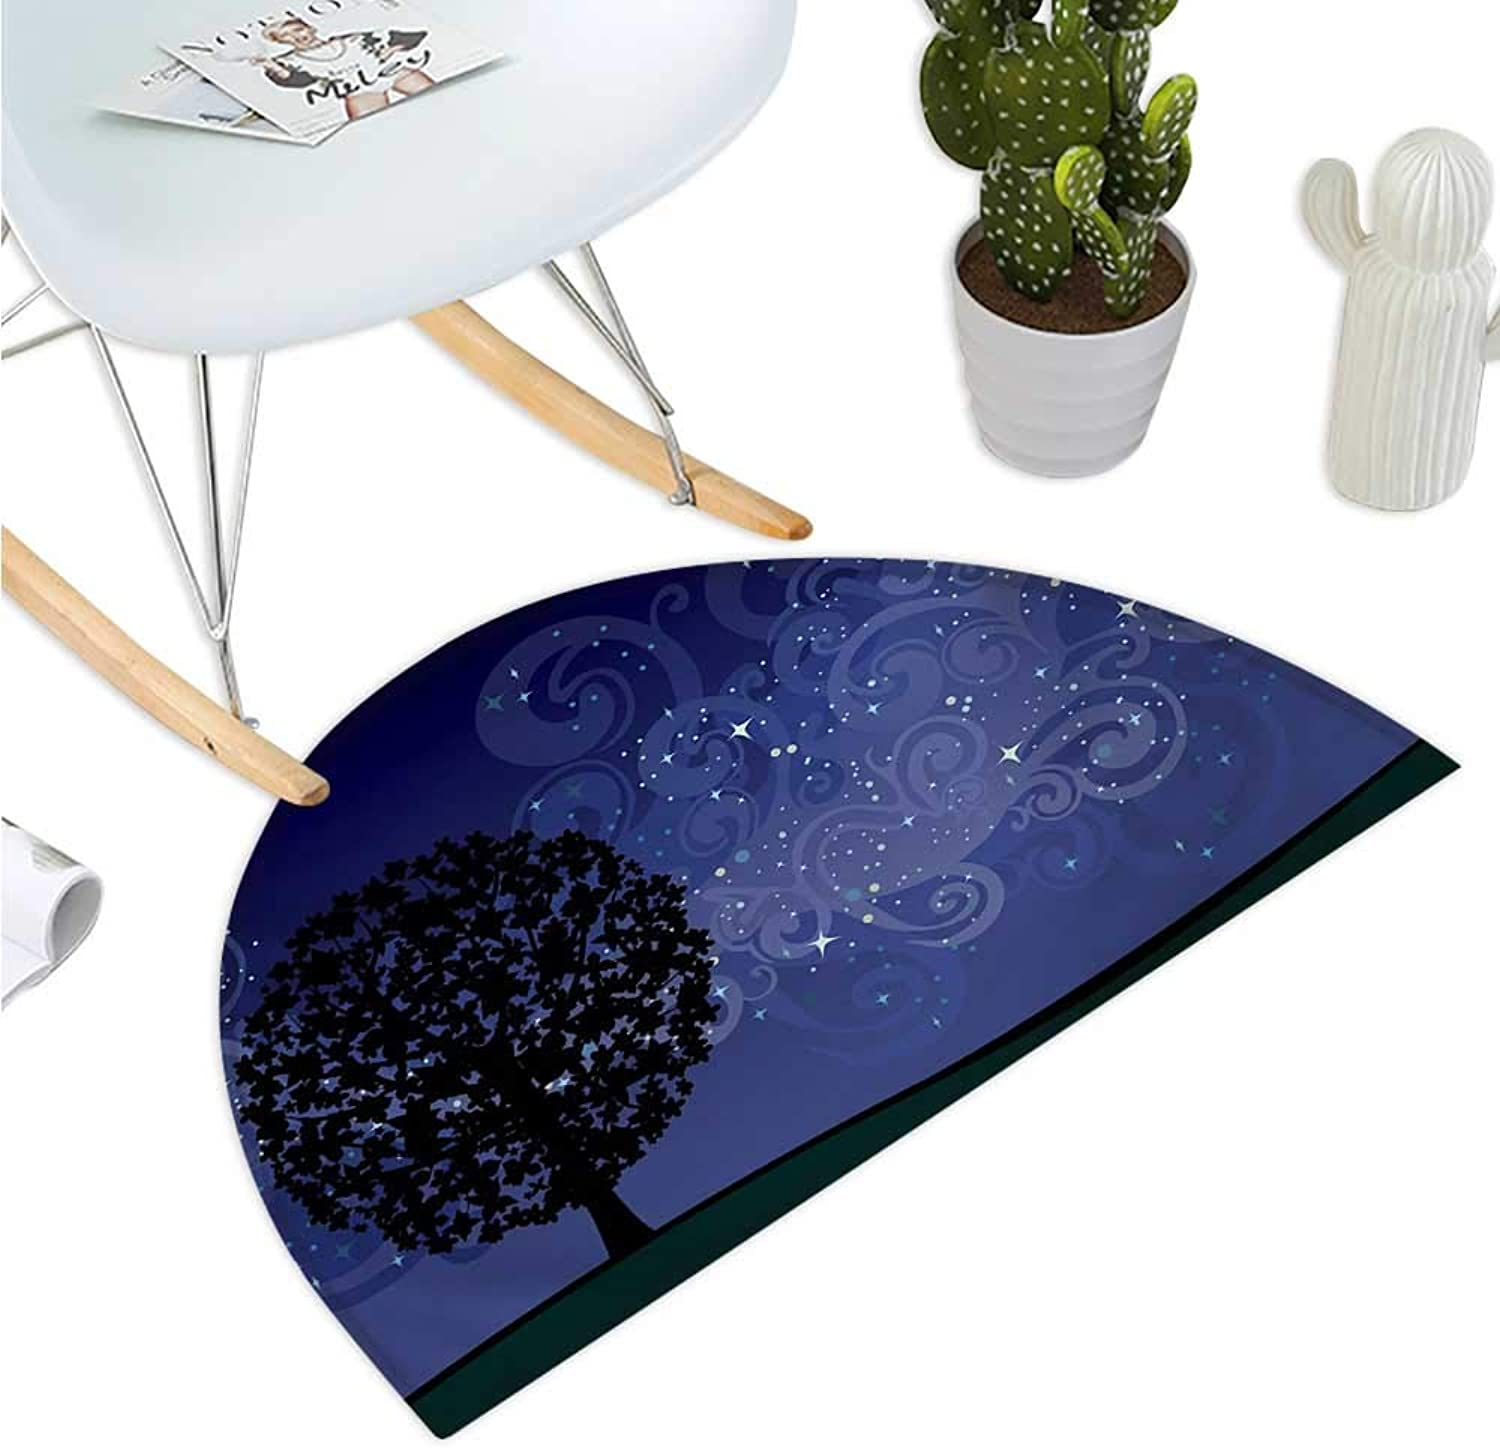 Starry Night Semicircular Cushion Tree on a Hill with Star Filled Sky and Moon Milky Way Galaxy Entry Door Mat H 35.4  xD 53.1  Indigo Charcoal Grey Black